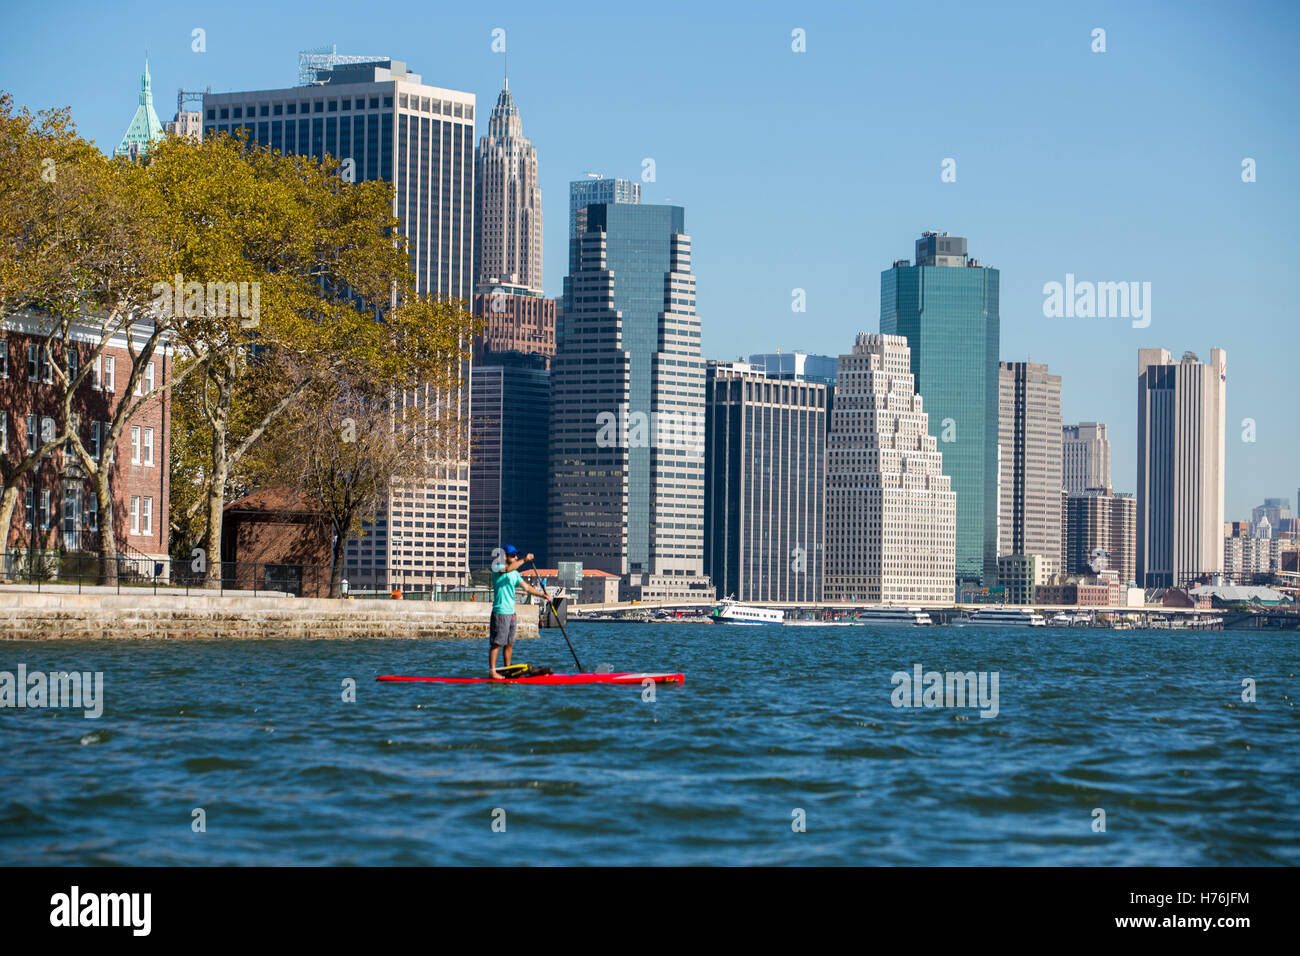 Paddling the five Boroughs of New York - Stock Image